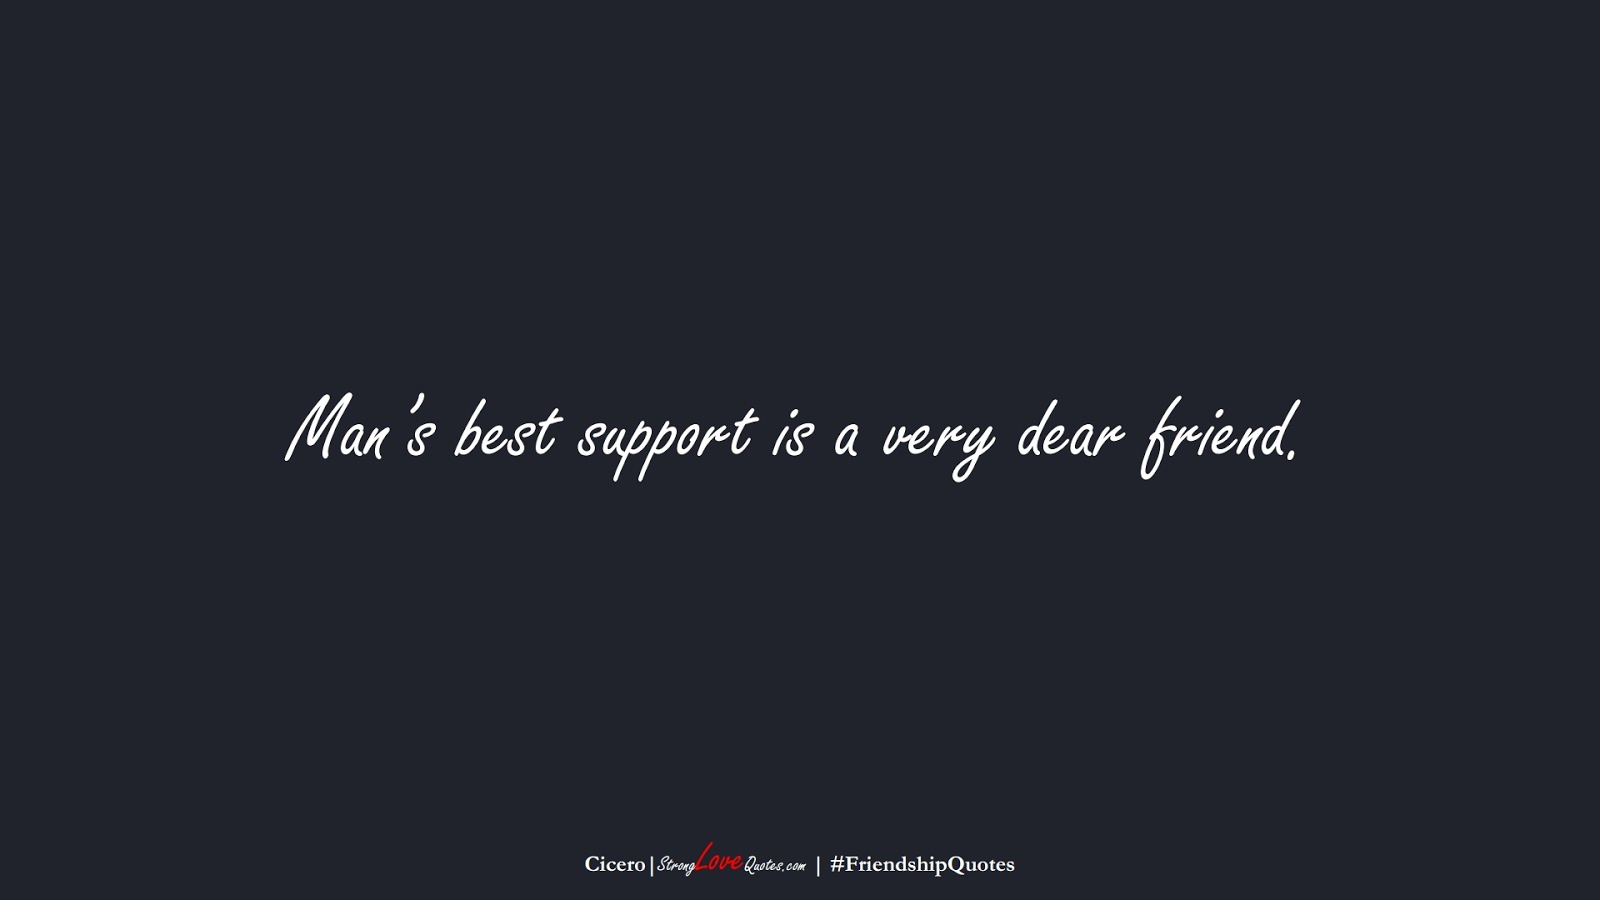 Man's best support is a very dear friend. (Cicero);  #FriendshipQuotes